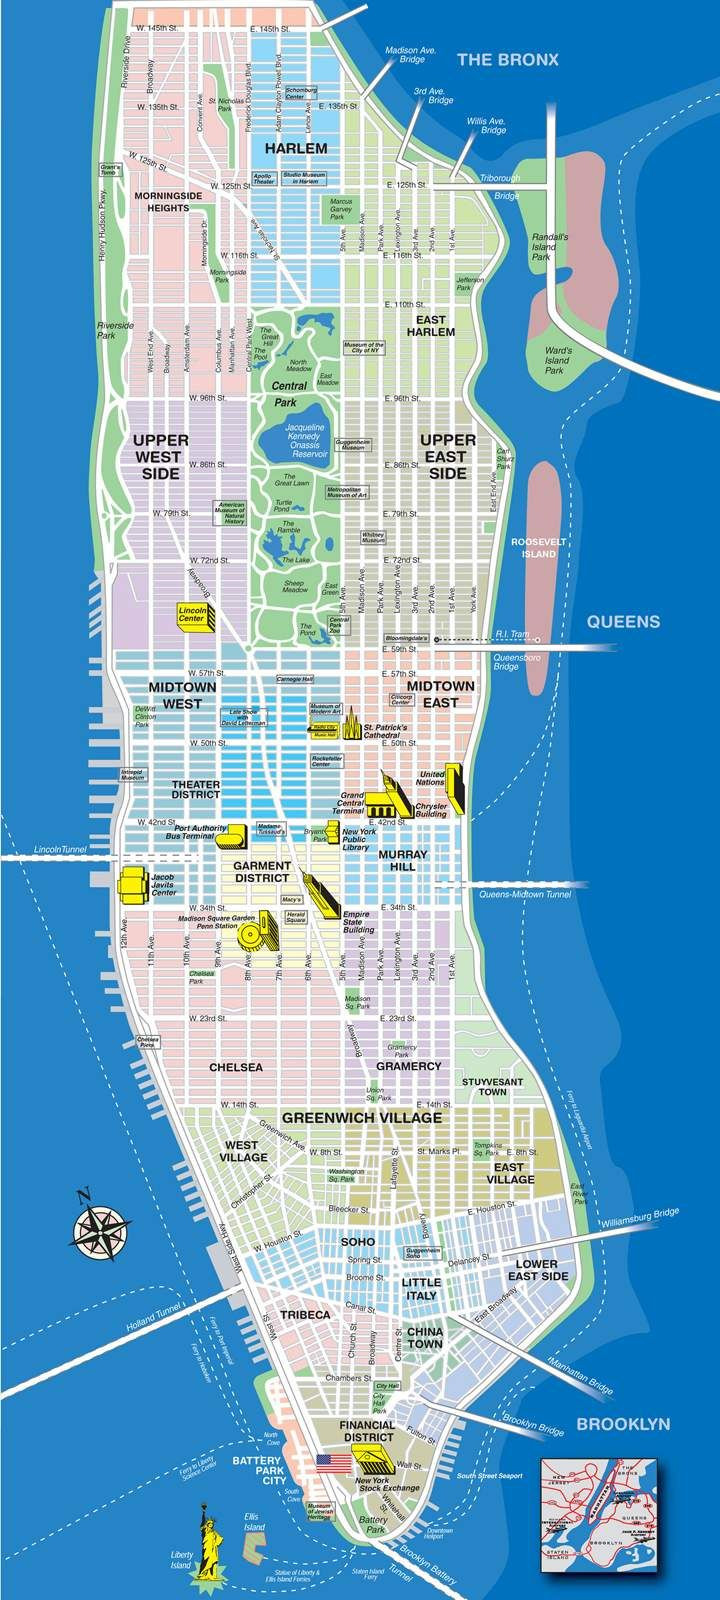 Printable Map New York City Awesome High Resolution Map Of Manhattan for Print or